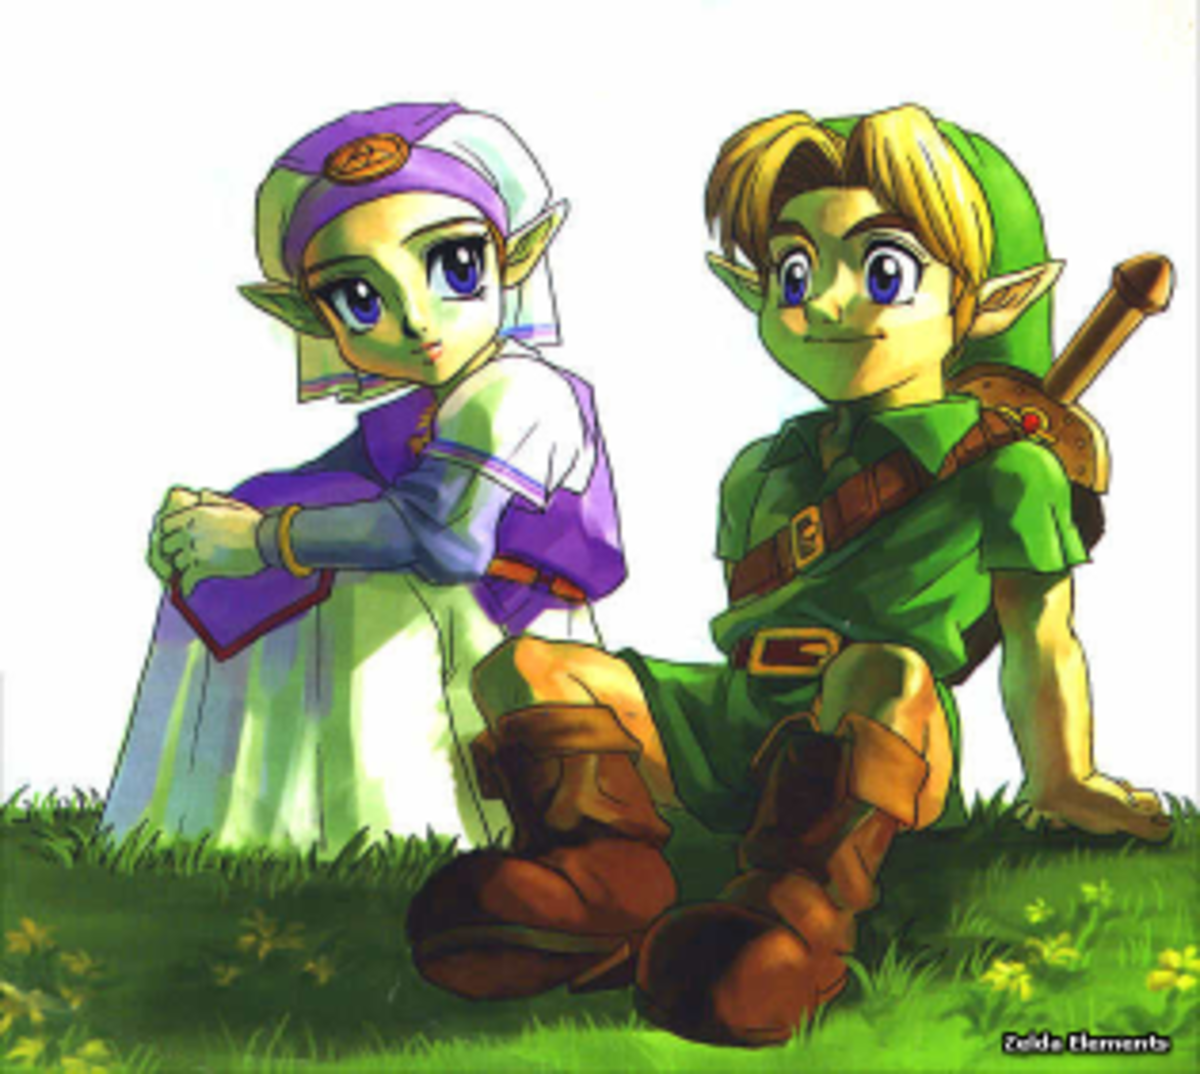 Link and Princess Zelda are the two most famous Hylians.